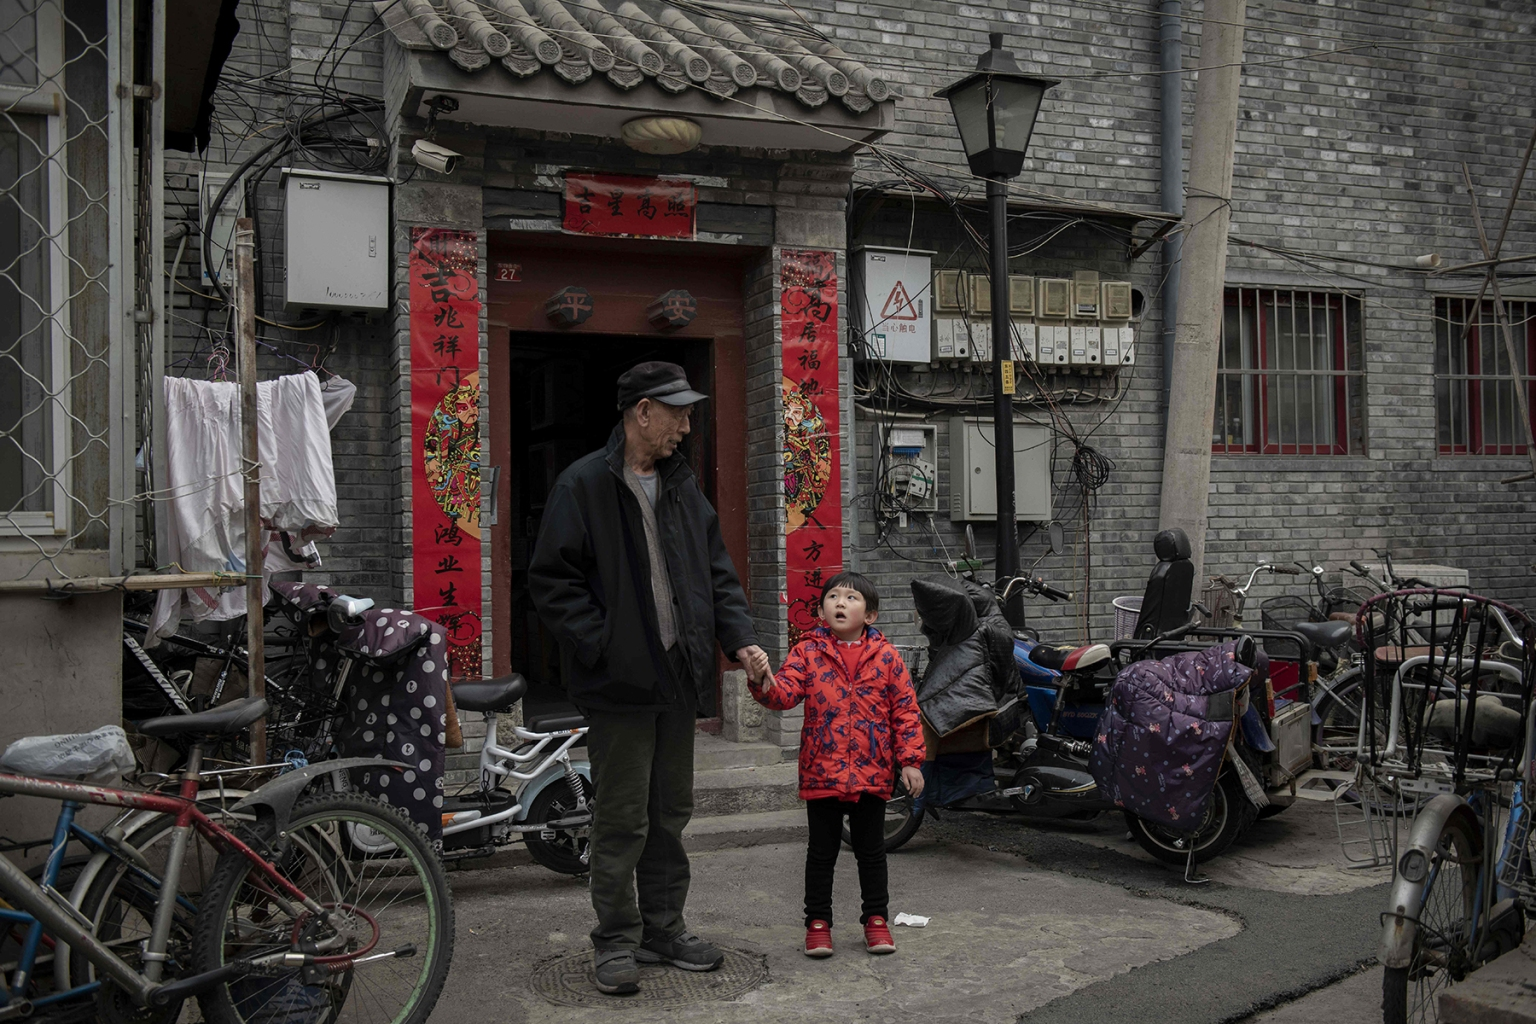 A man talks to a girl in the courtyard outside their house in a hutong area in Beijing on Feb. 26. NICOLAS ASFOURI/AFP/Getty Images